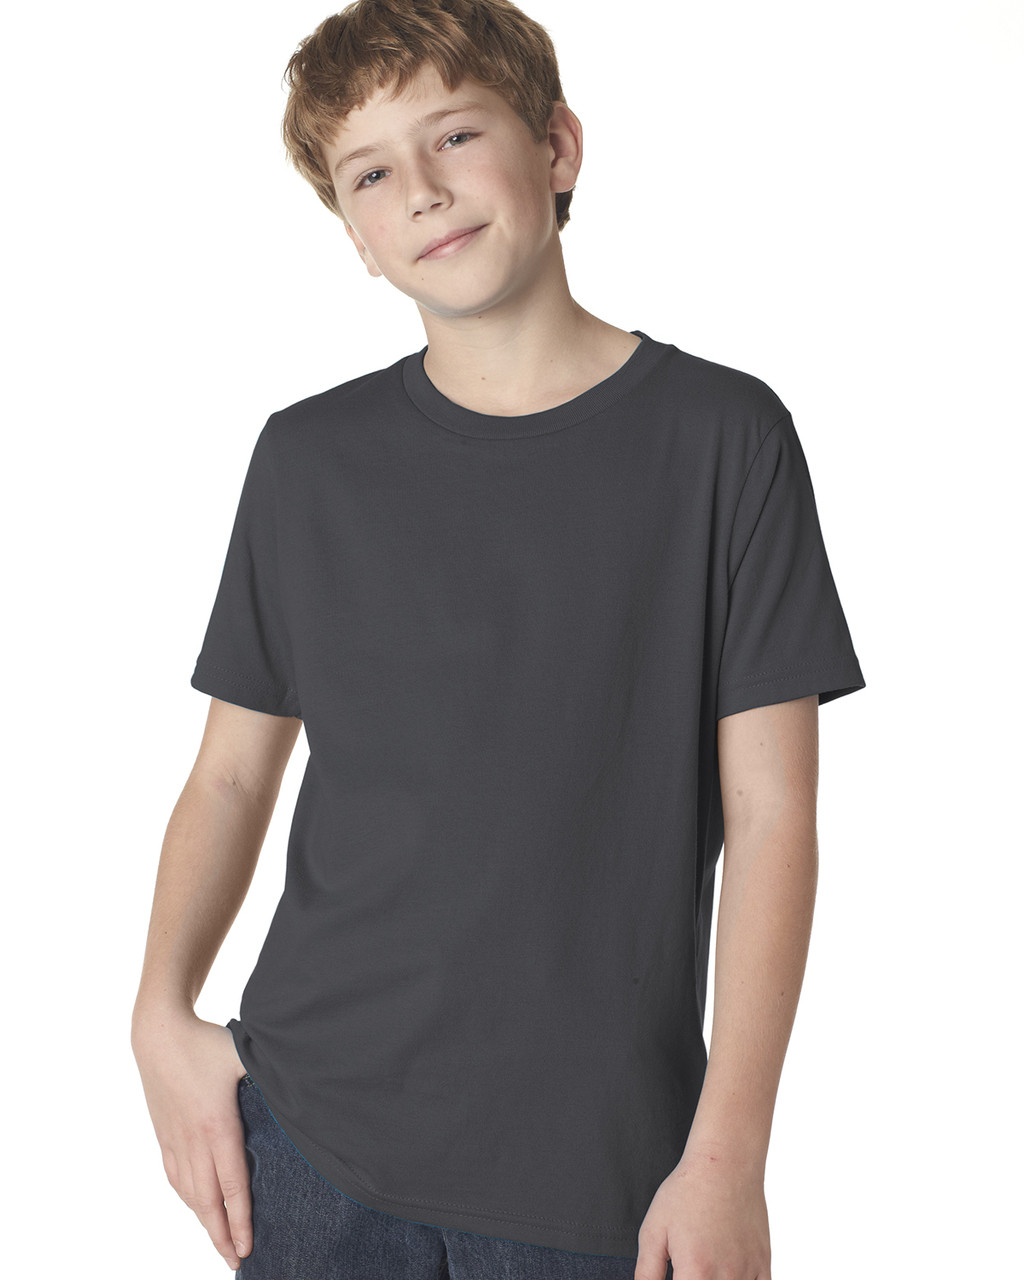 Heavy Metal 3310 Next Level Boys' Premium Crew Tee | Blankclothing.ca